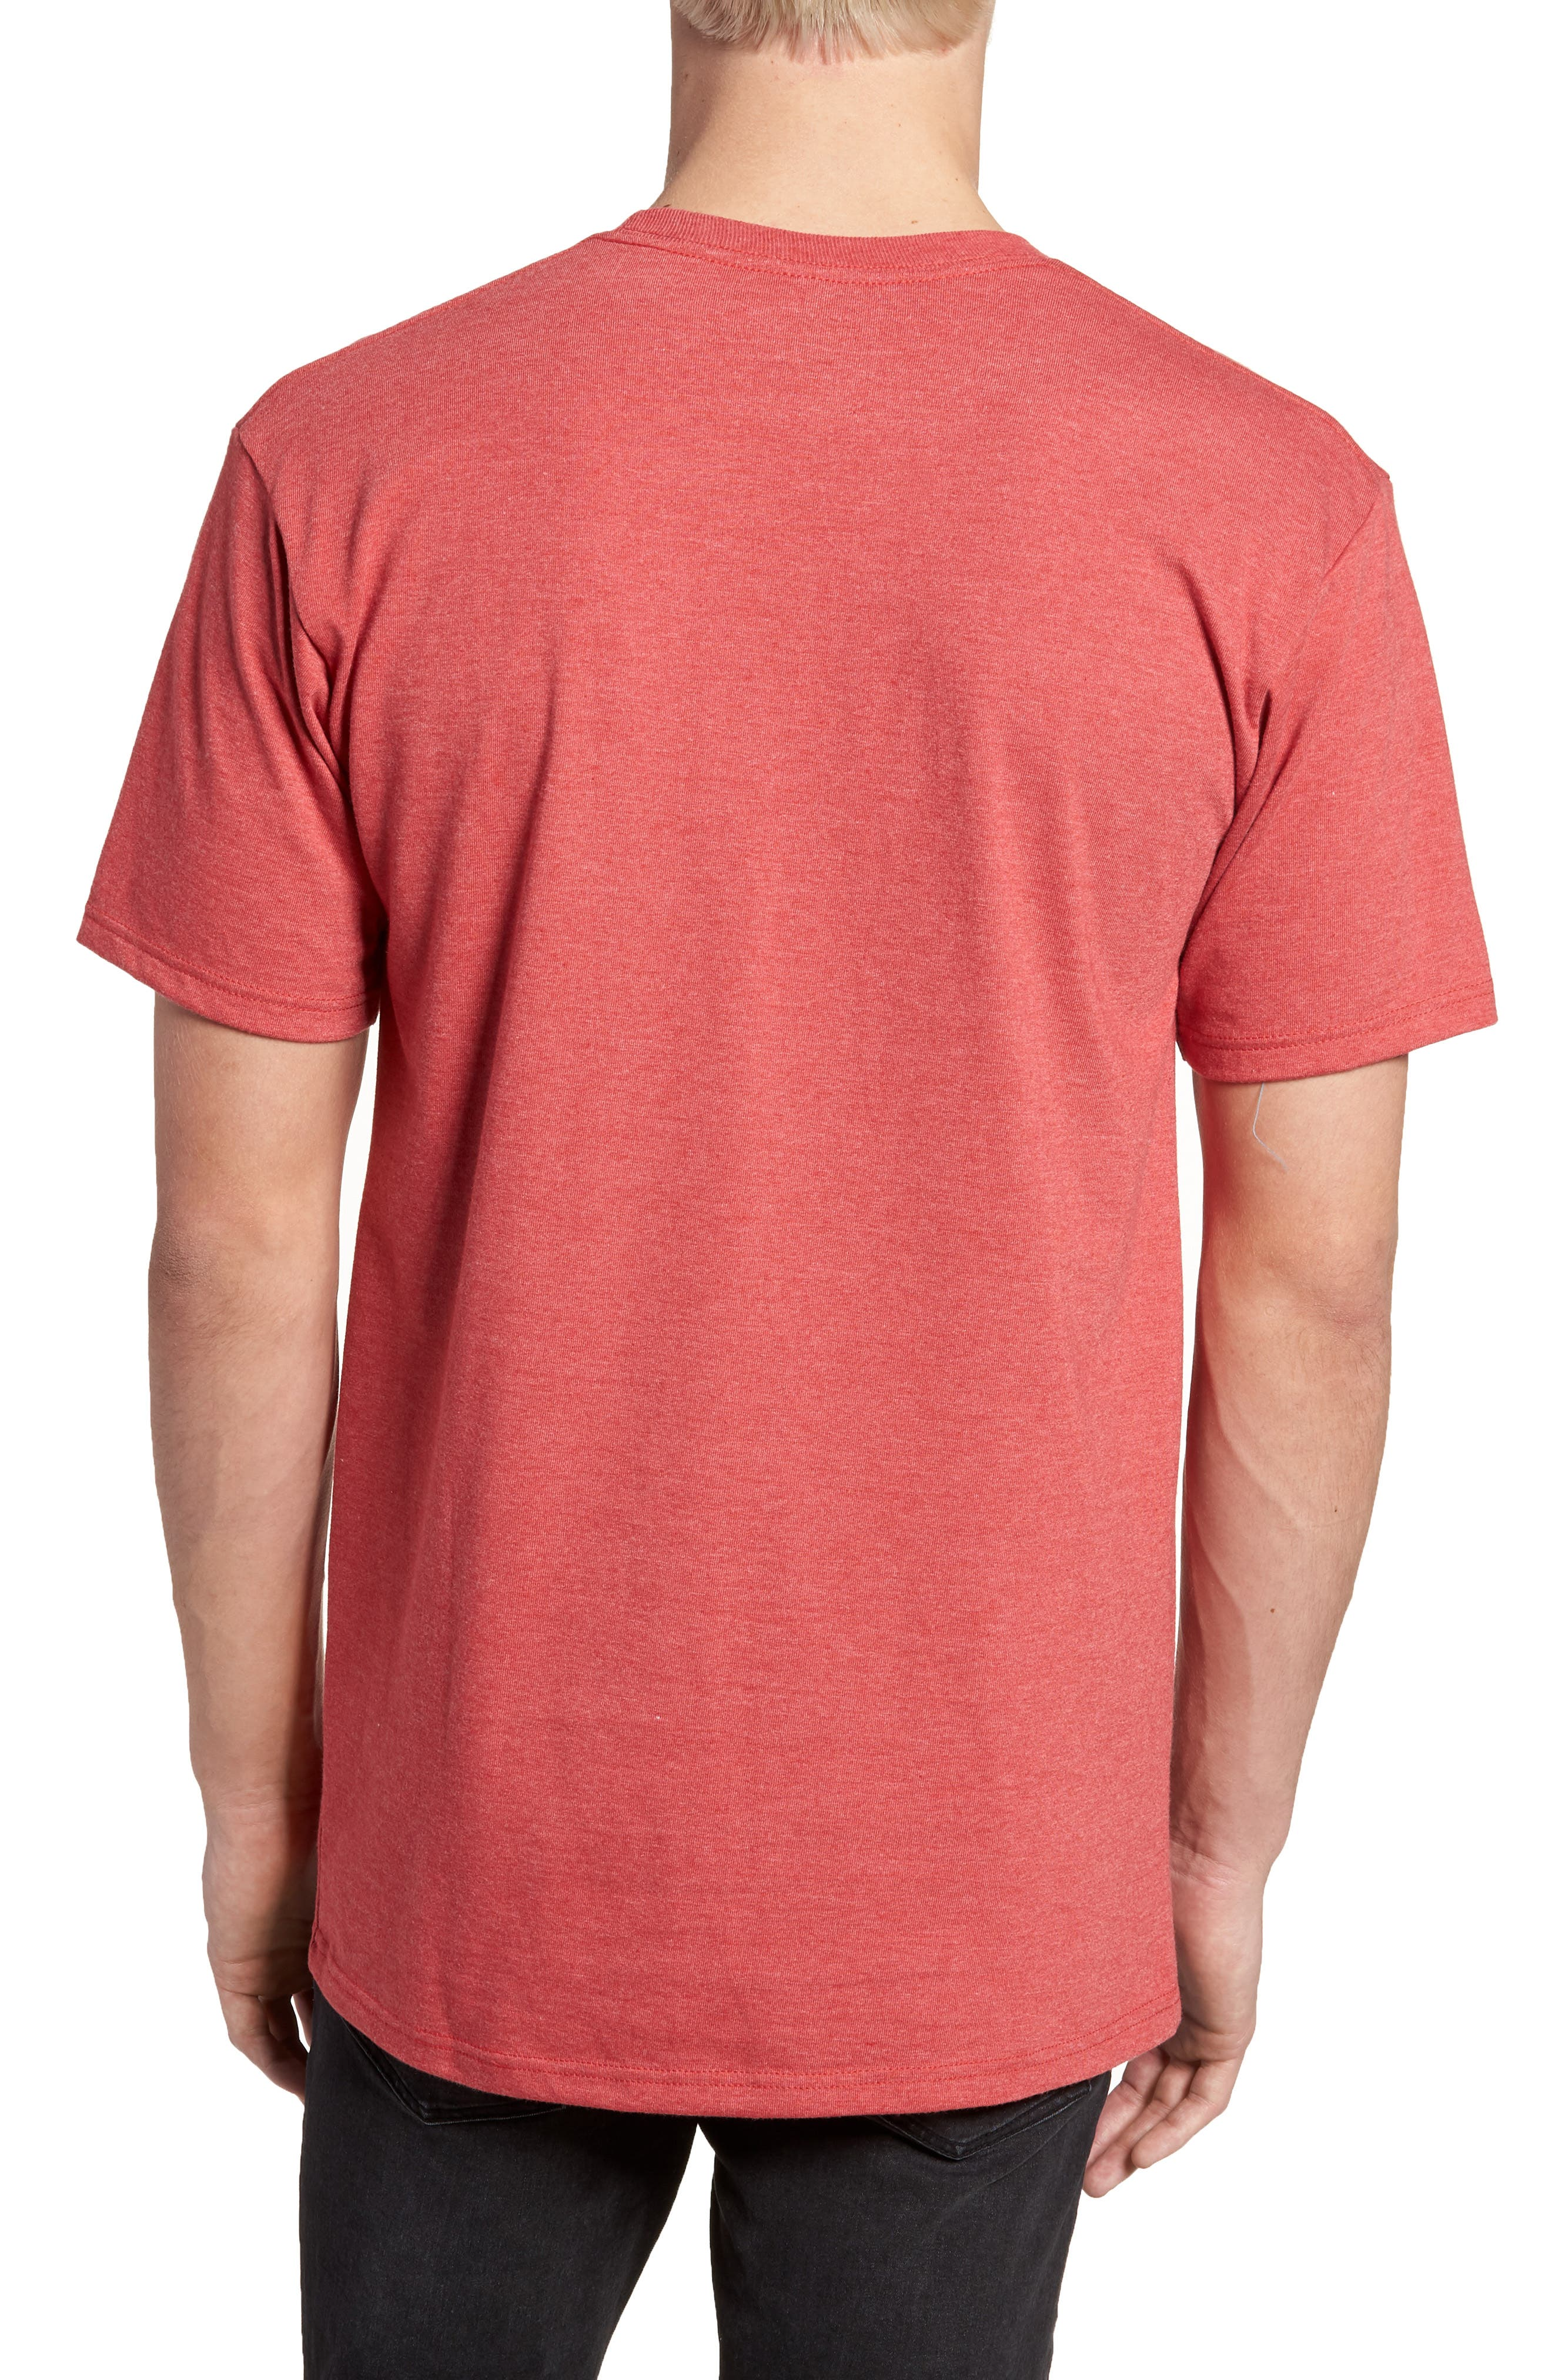 MFG Graphic T-Shirt,                             Alternate thumbnail 2, color,                             Red Heather